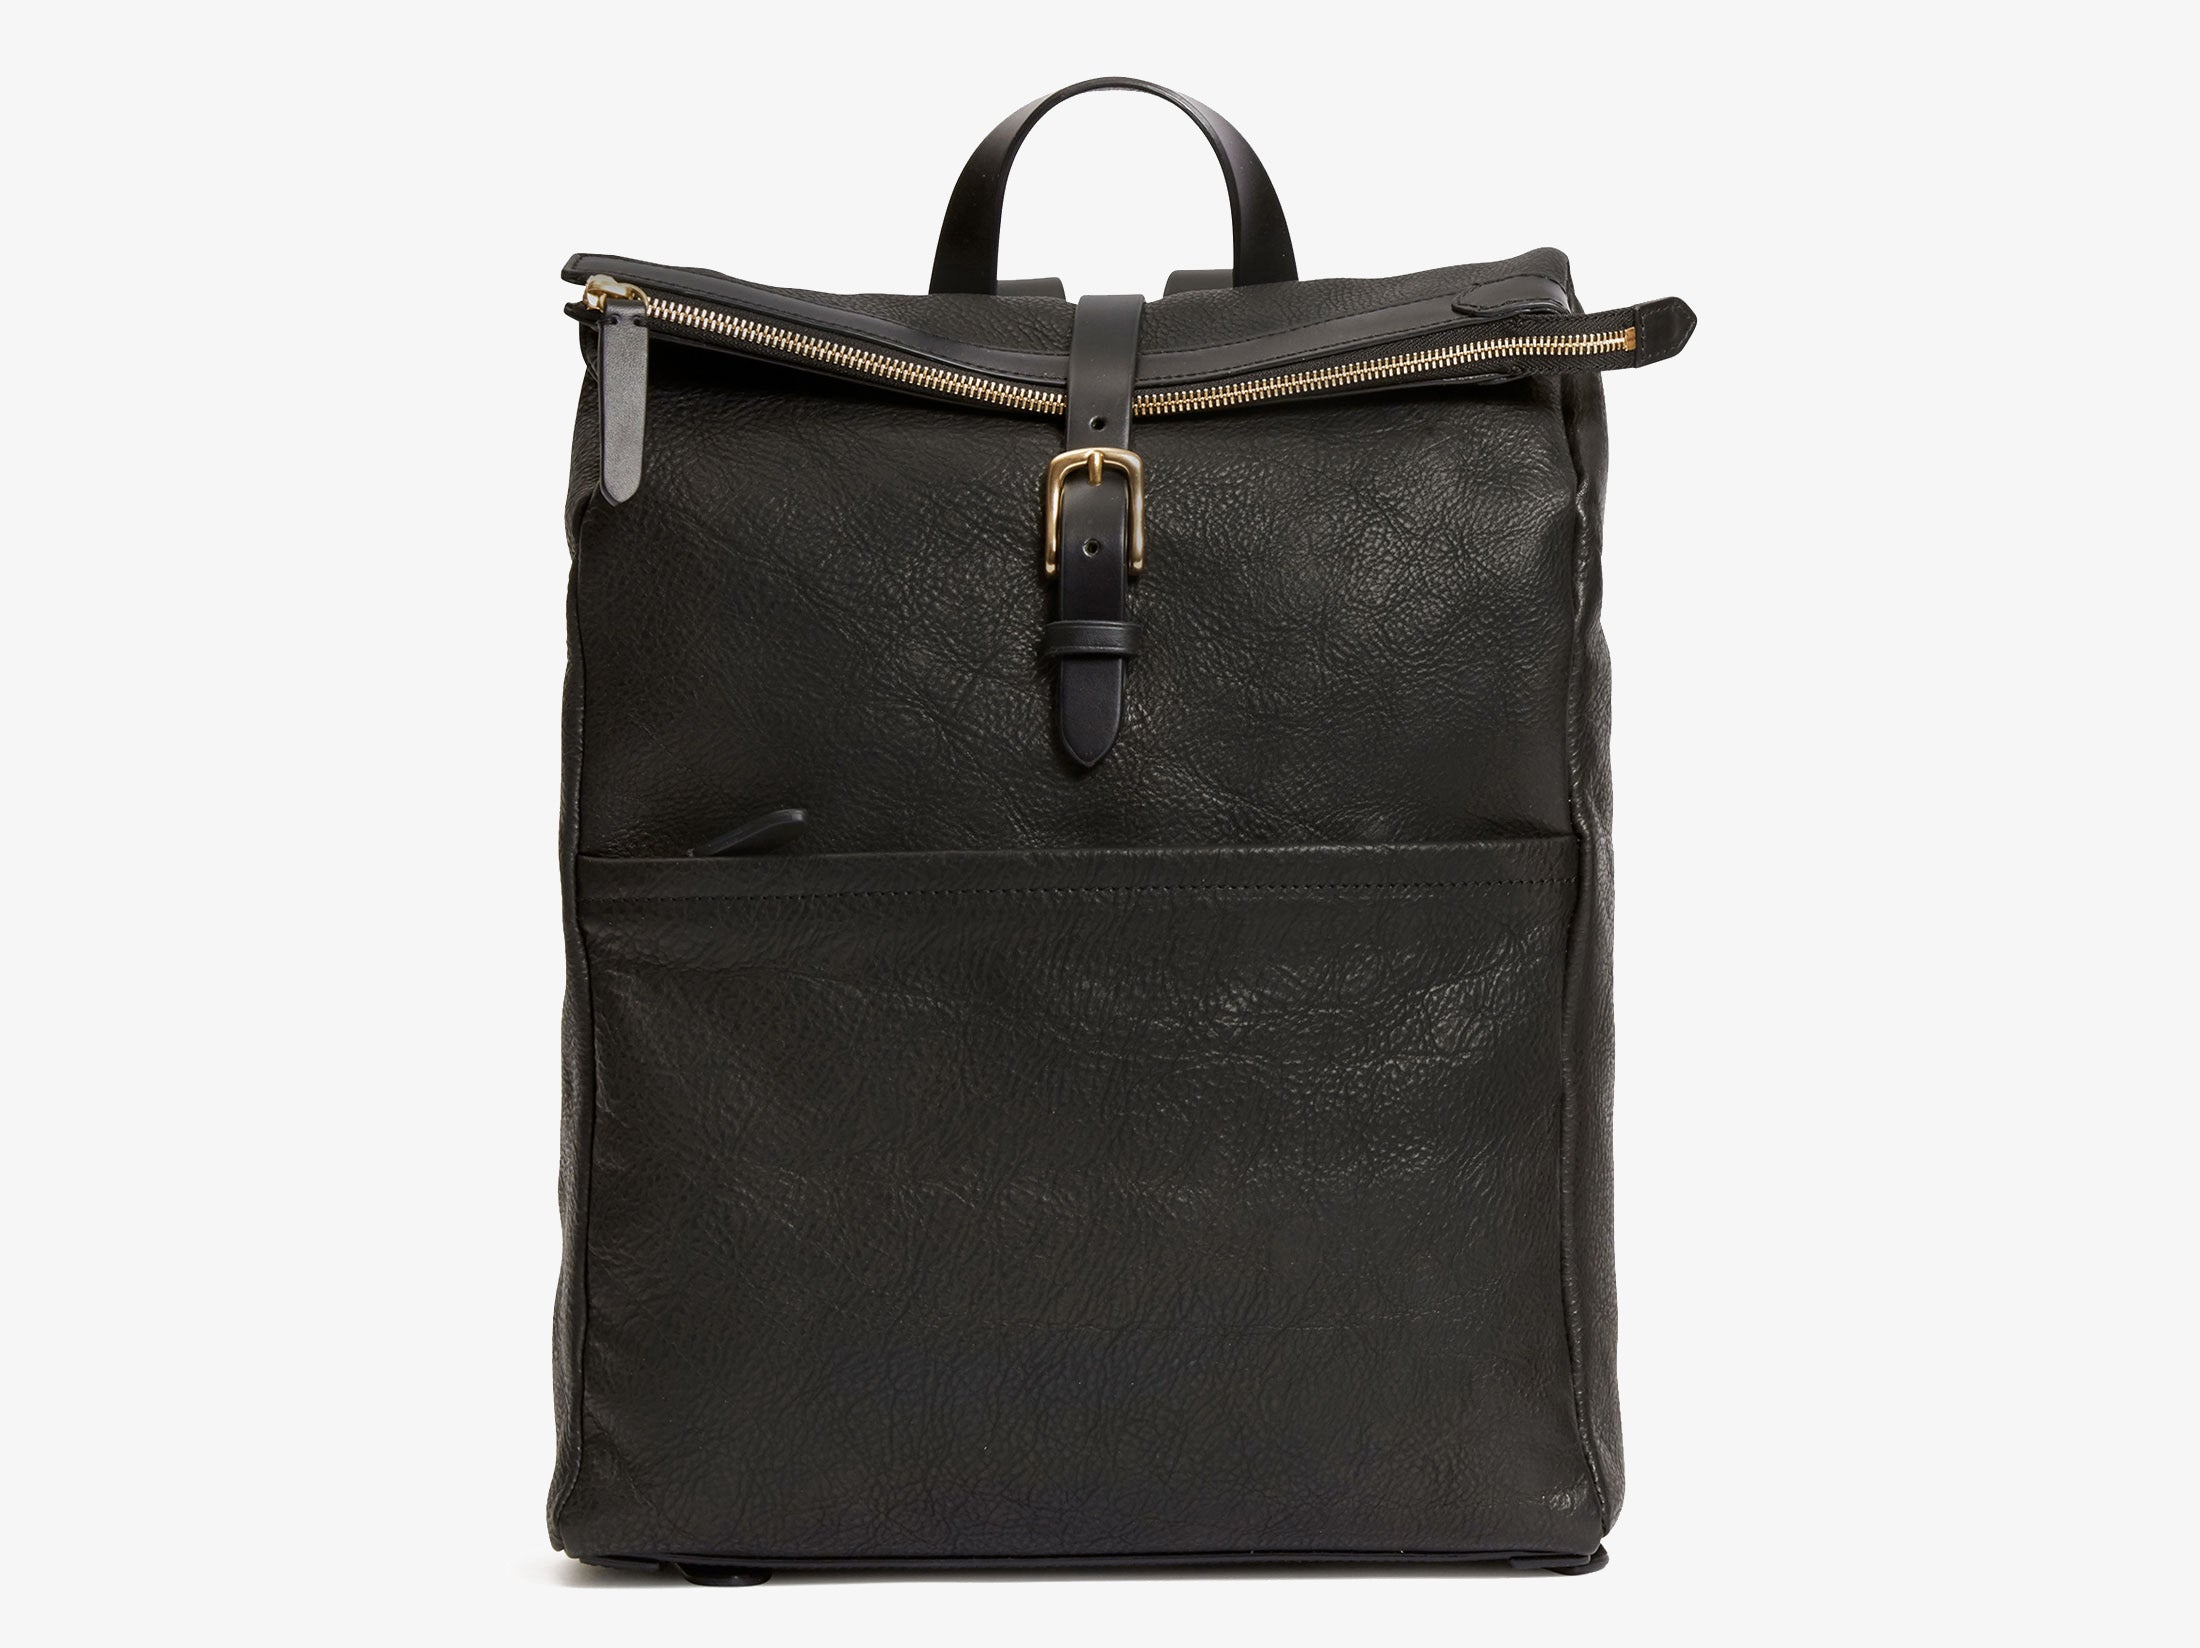 000836c6a7 Leather Roll Top Backpack | Black Leather | Danish Design – Mismo ...